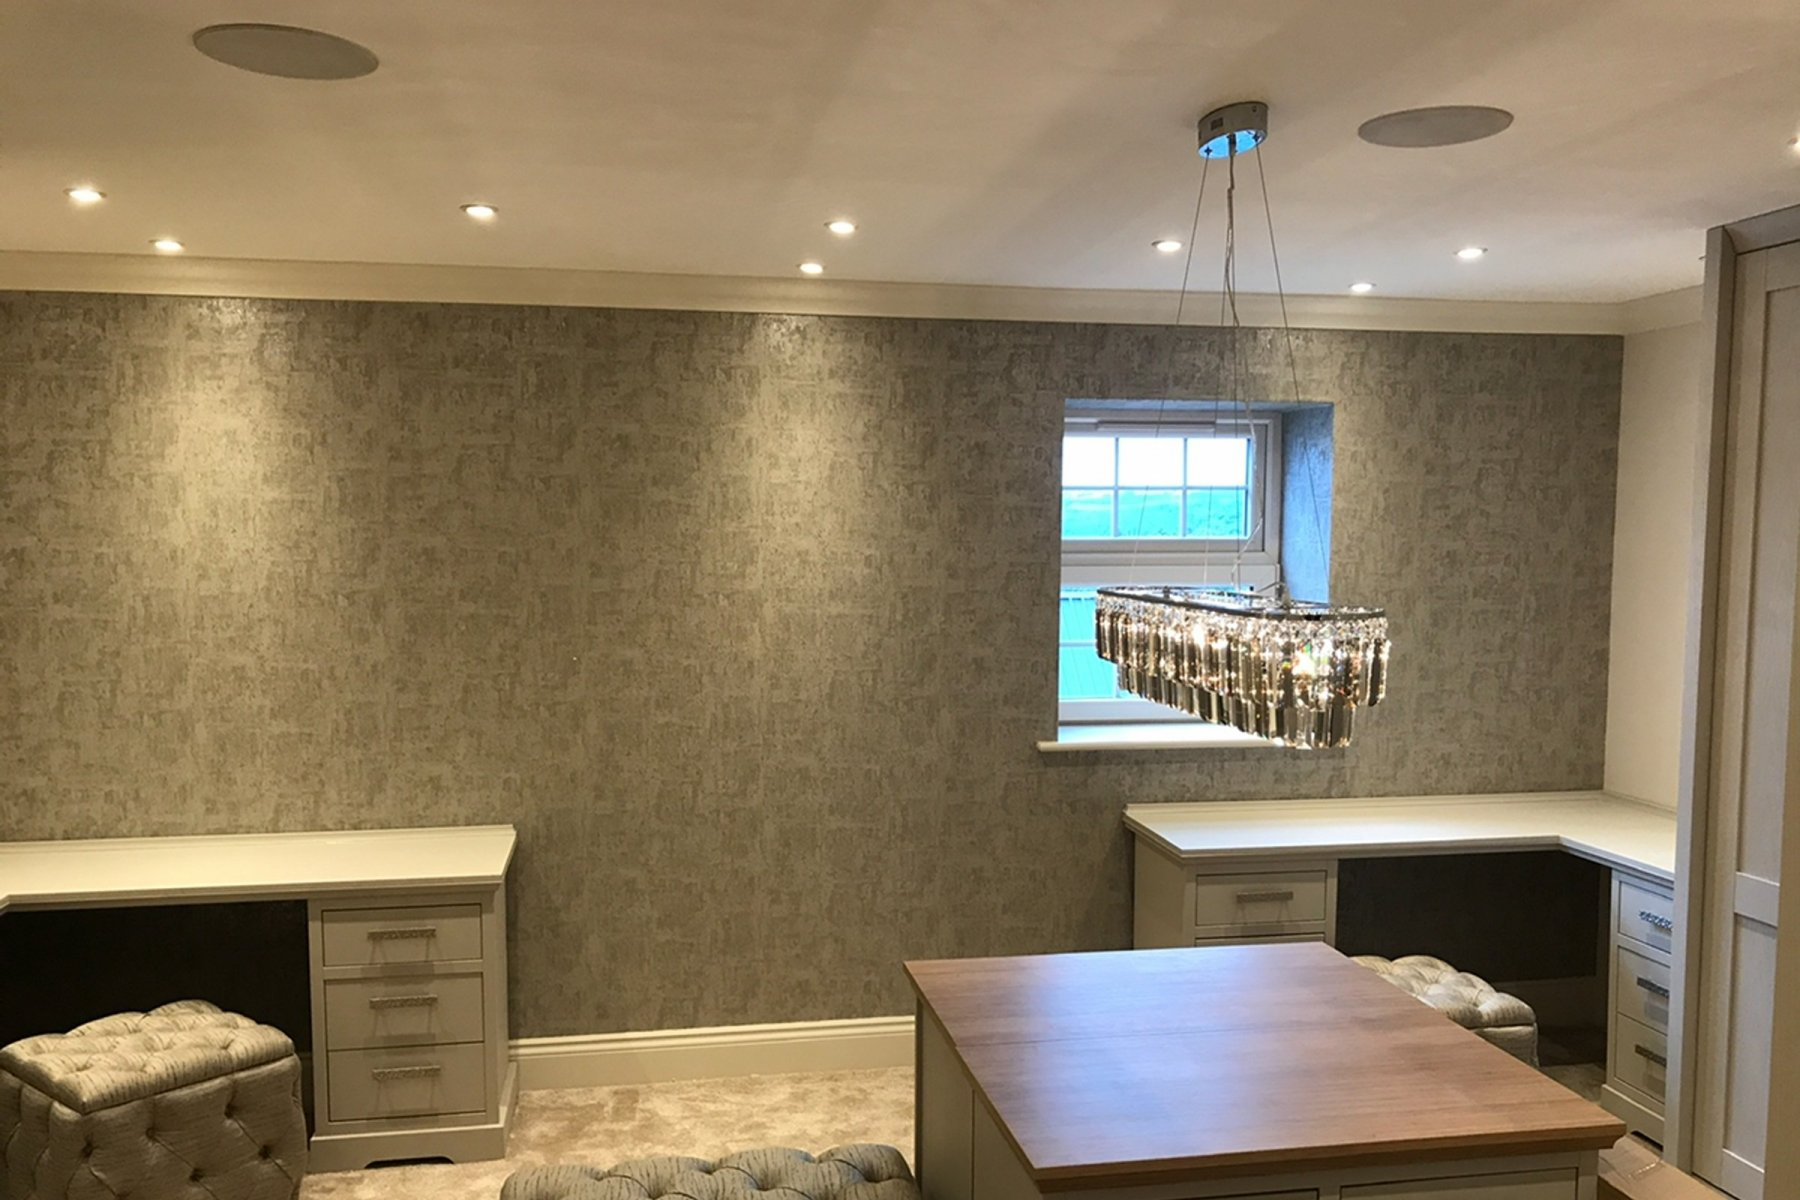 Dressing room with Sonance in ceiling speakers